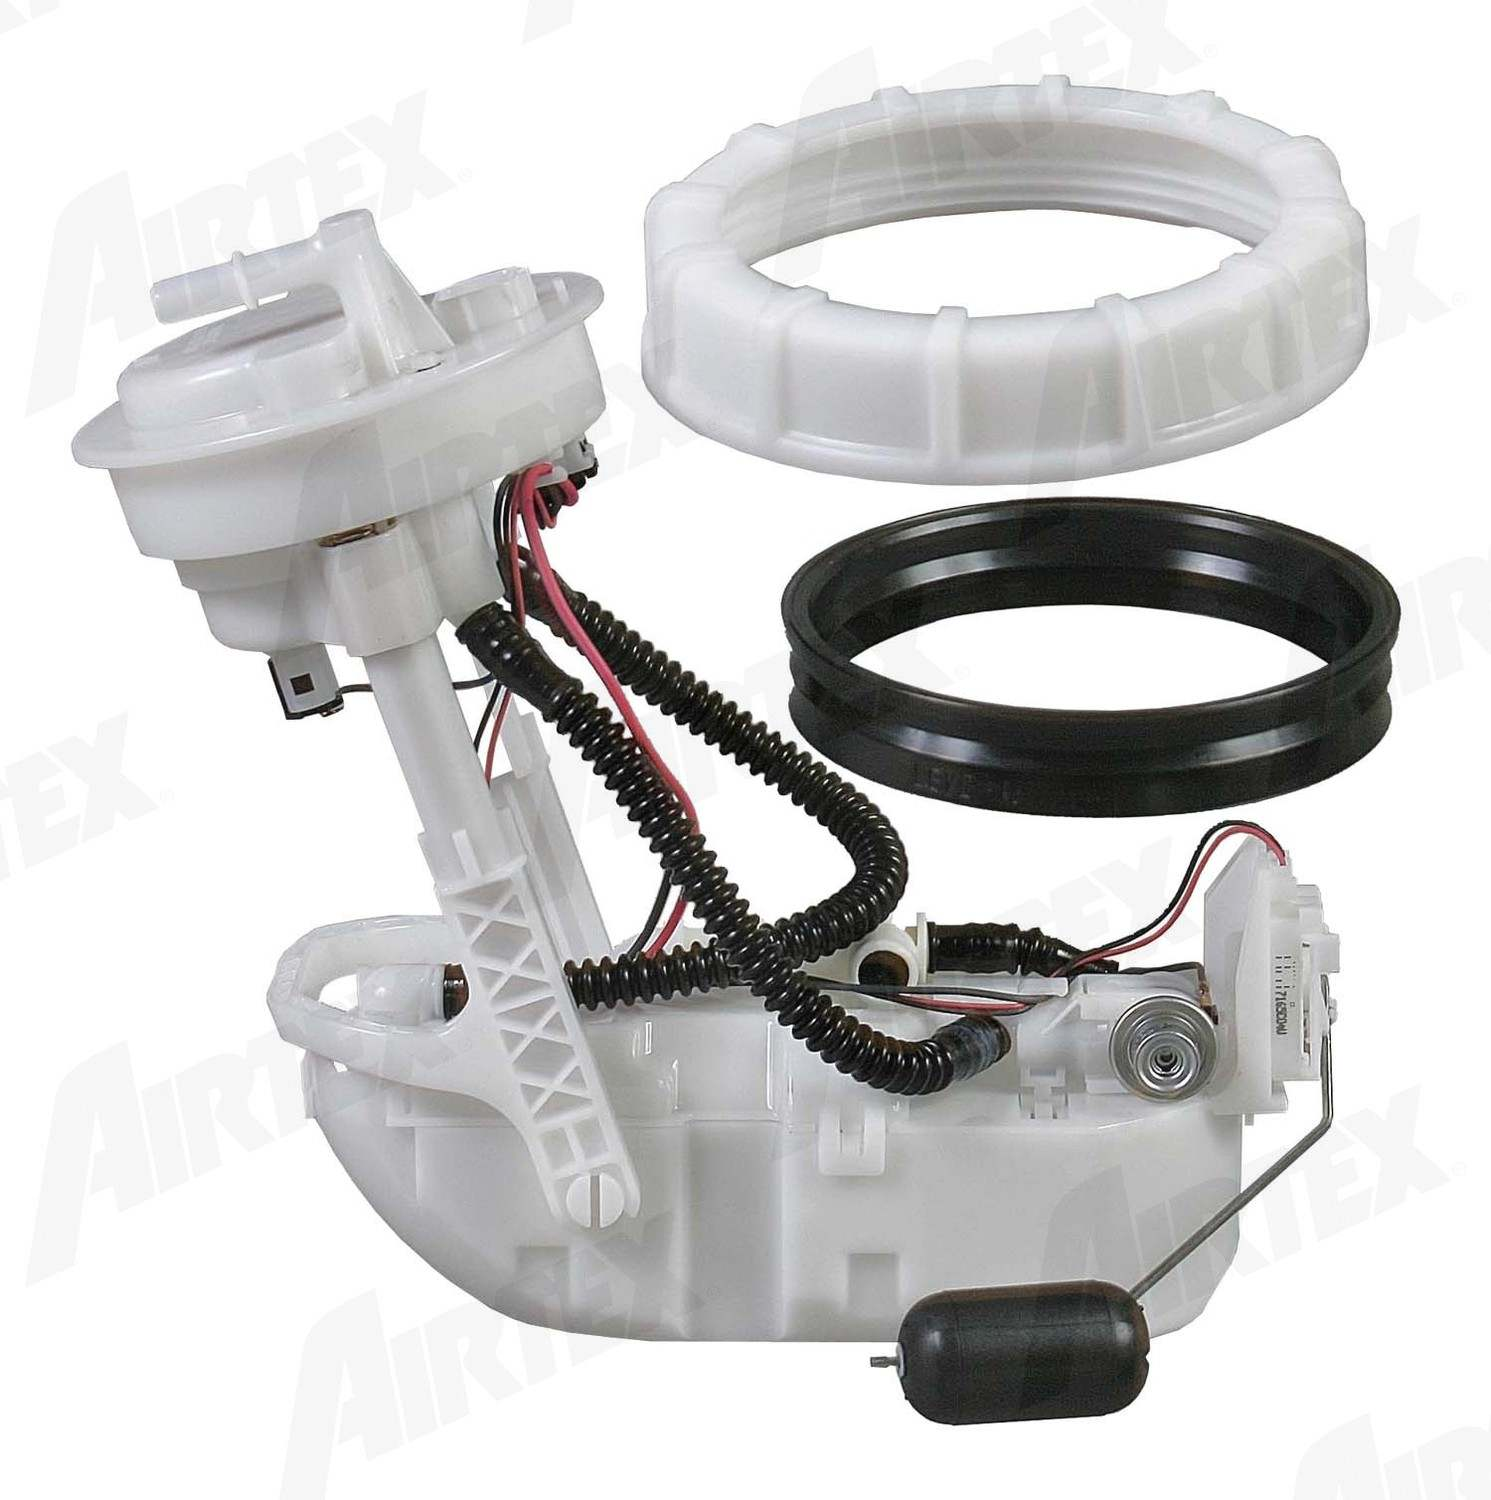 AIRTEX AUTOMOTIVE DIVISION - Fuel Pump Module Assembly - ATN E9025M